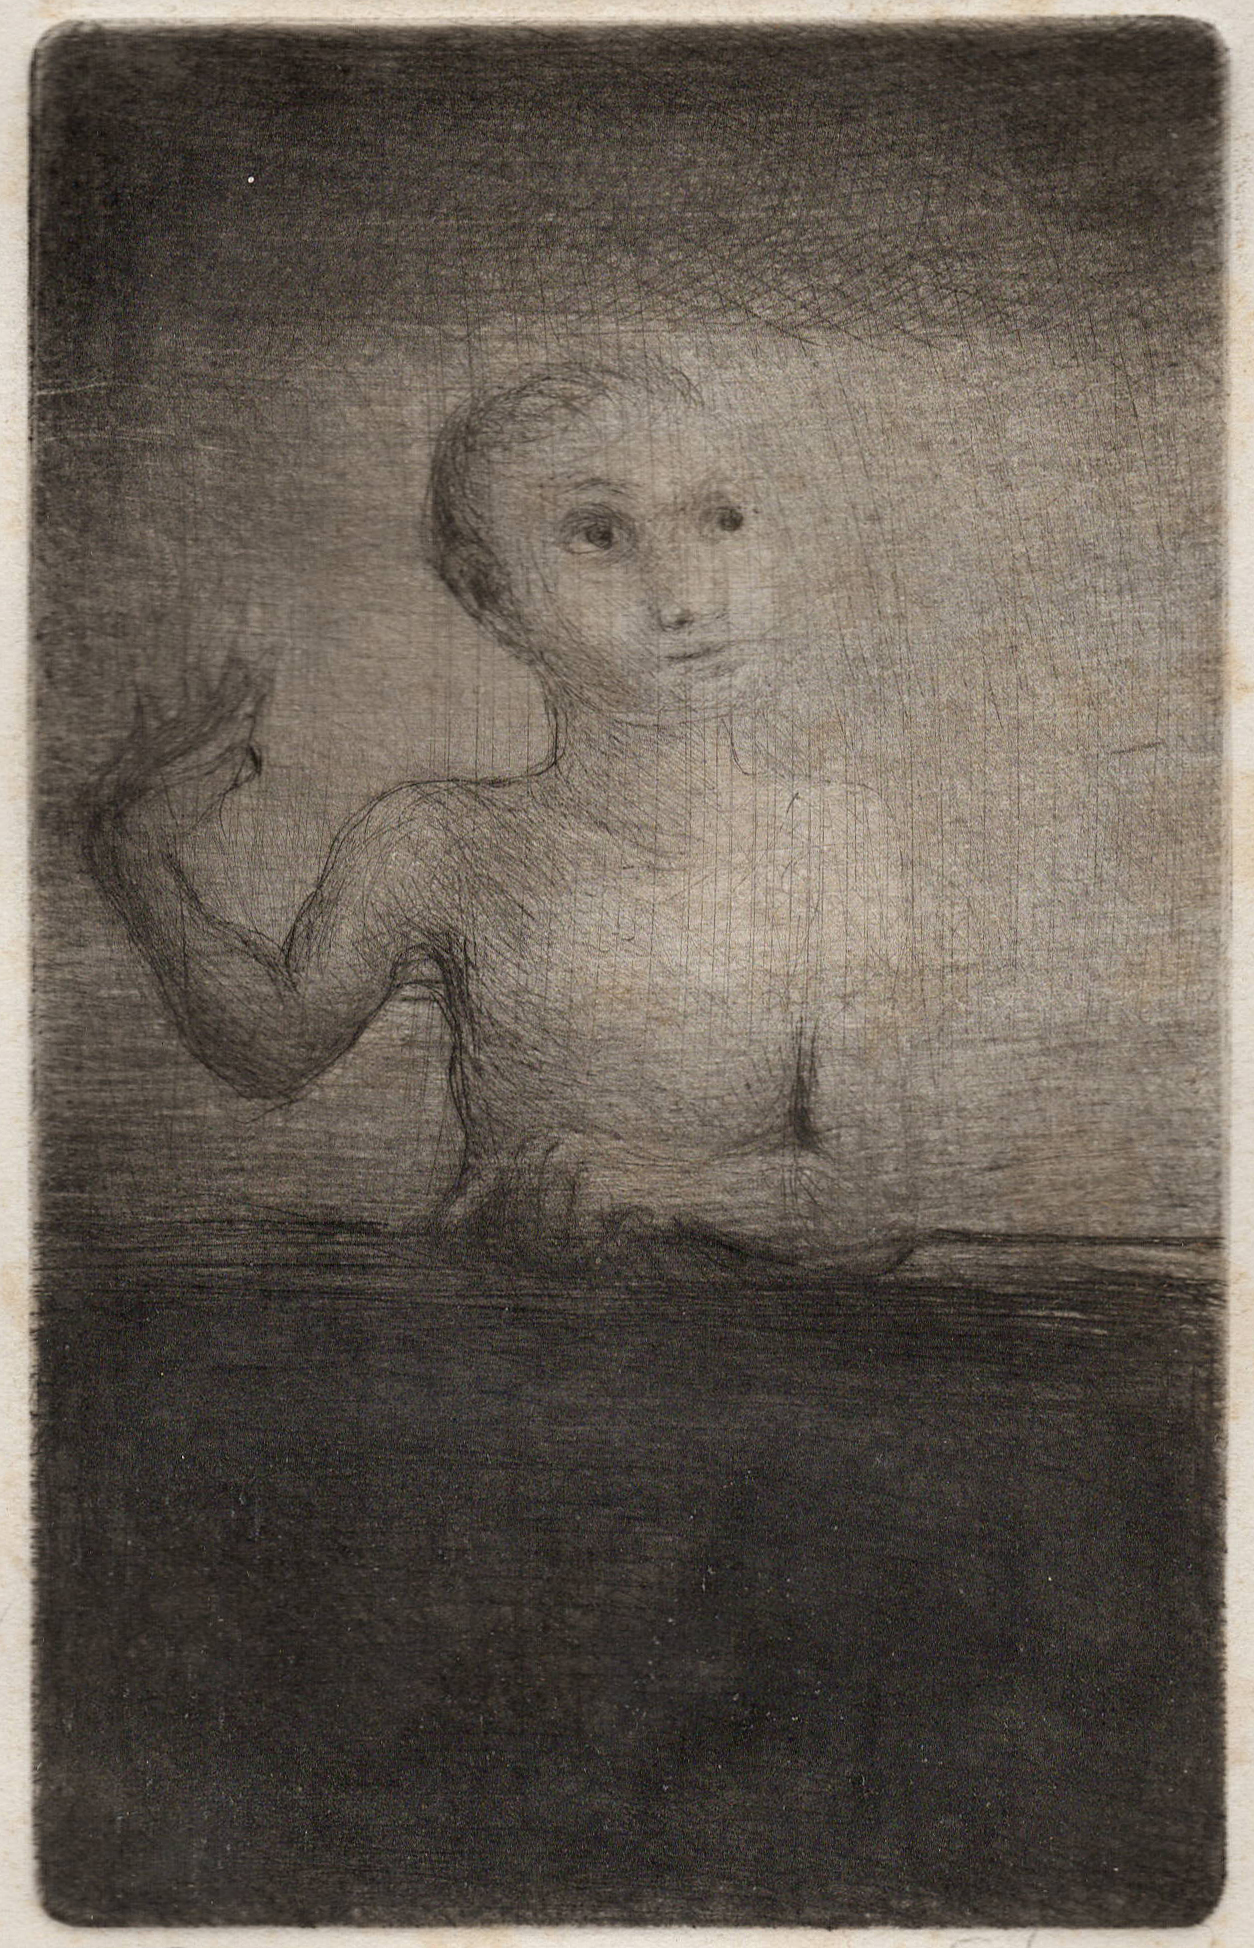 Waving Child, Etching